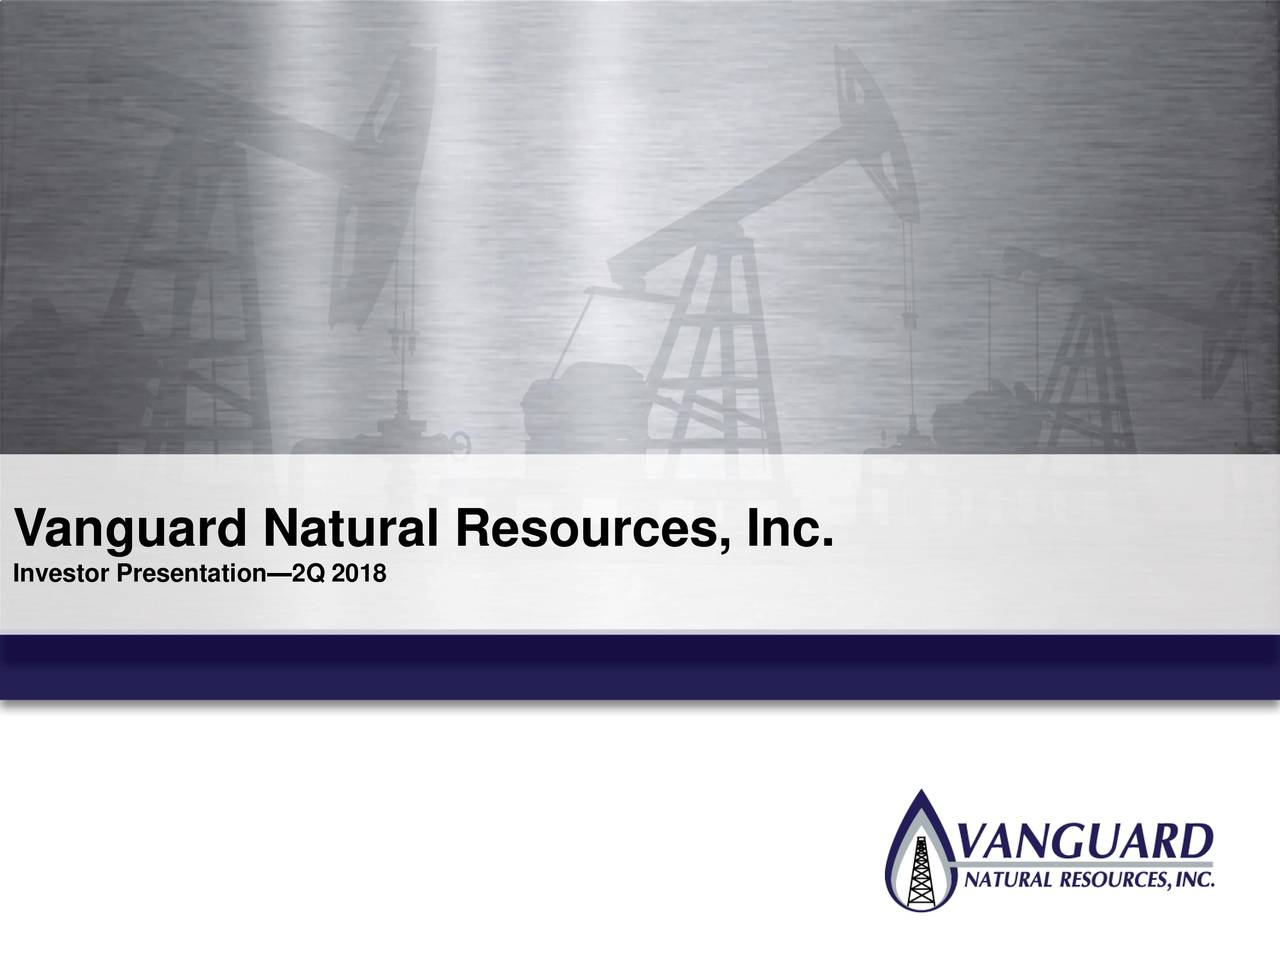 Vanguard Natural Resources Quote